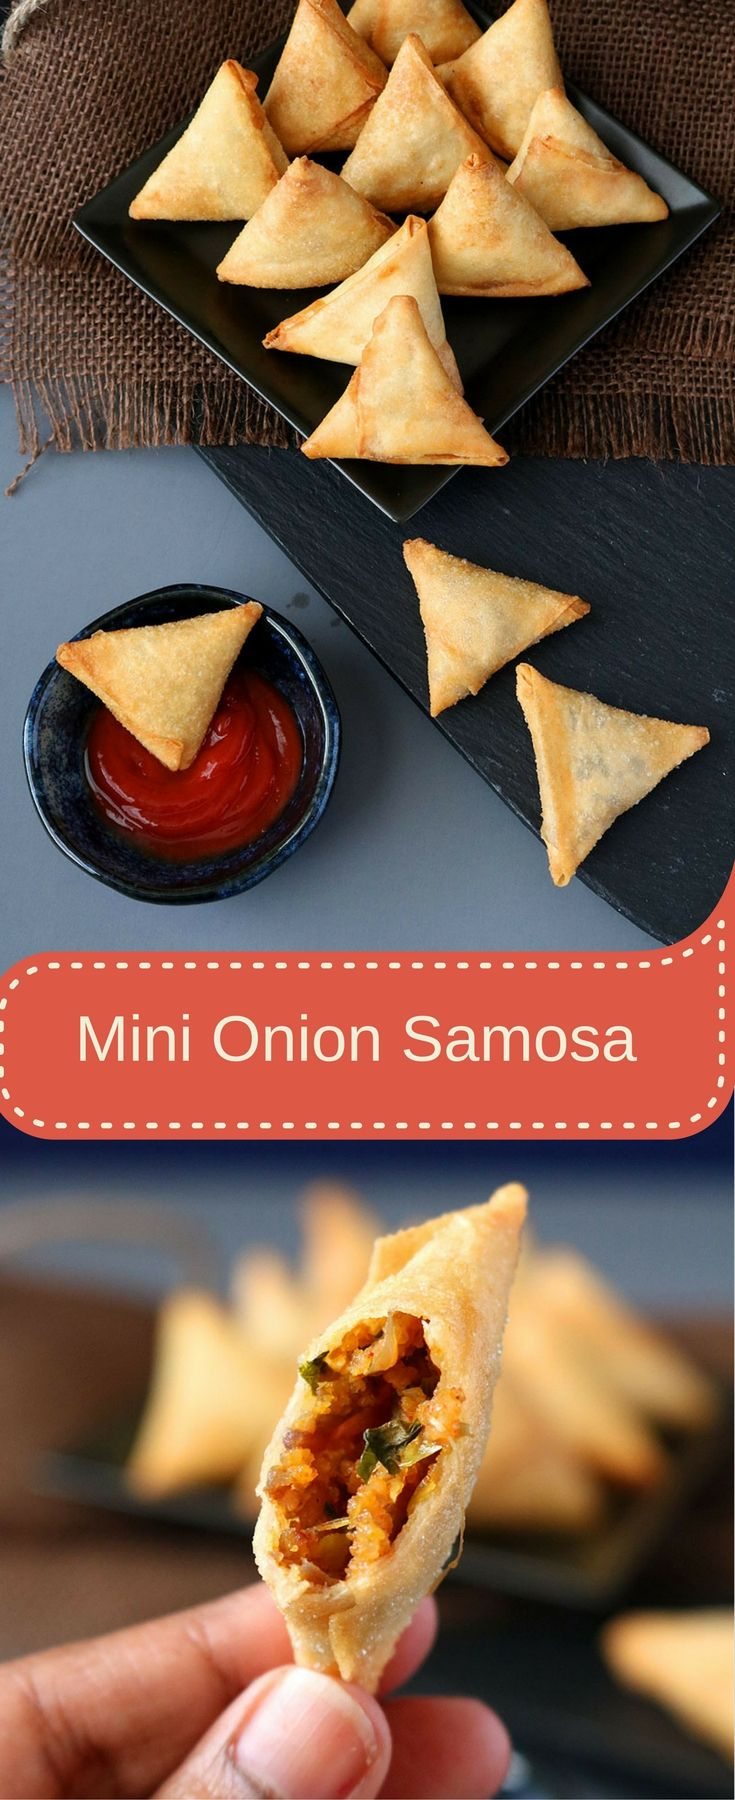 Mini Onion Samosa is a quick and delicious Indian snack made with a spicy caramelized onion filling and a crispy outer spring roll wrapper.